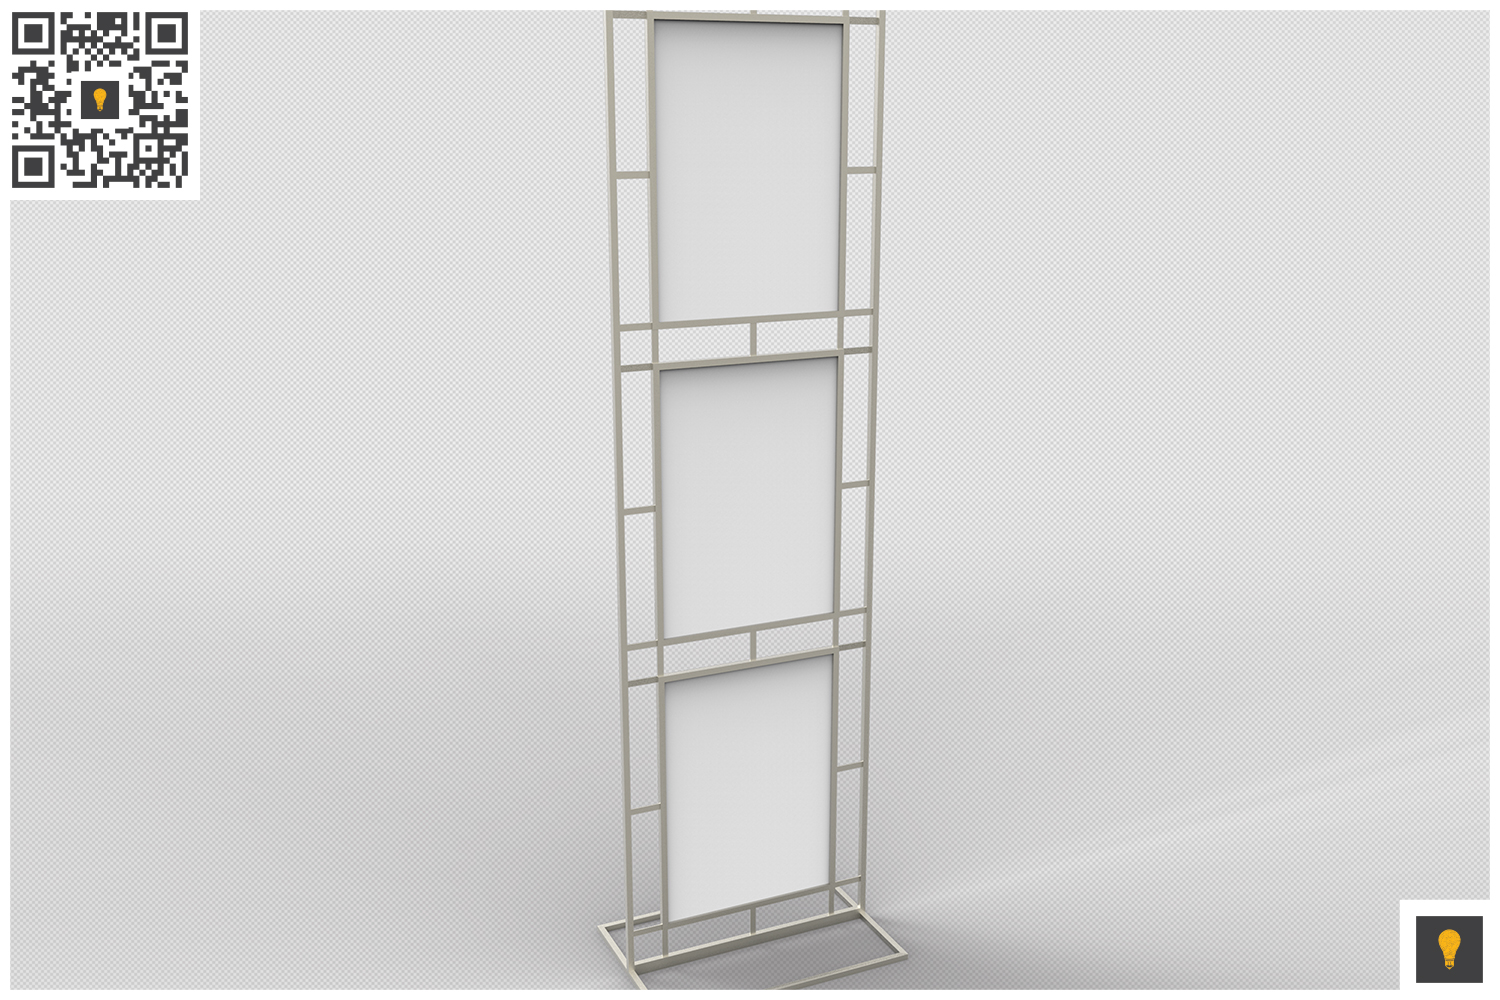 Poster Stand Display 3D Render example image 2